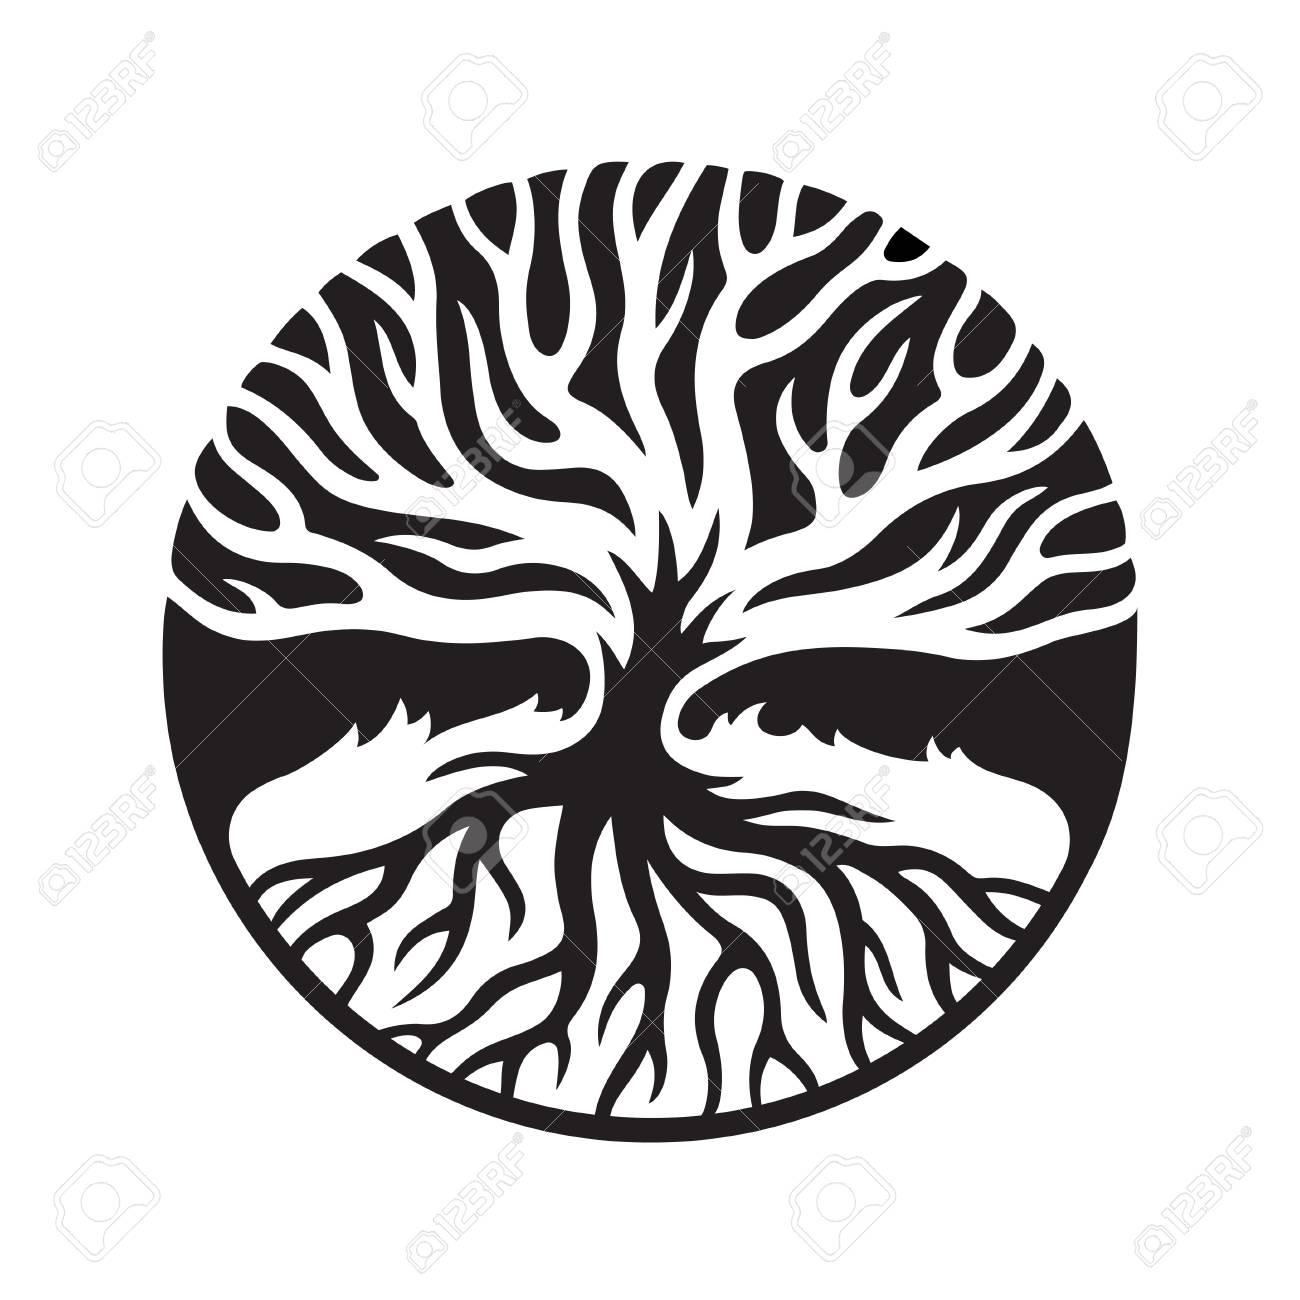 tree of life concept illustration decorative tree with roots rh 123rf com tree of life vector free download tree of life vector file